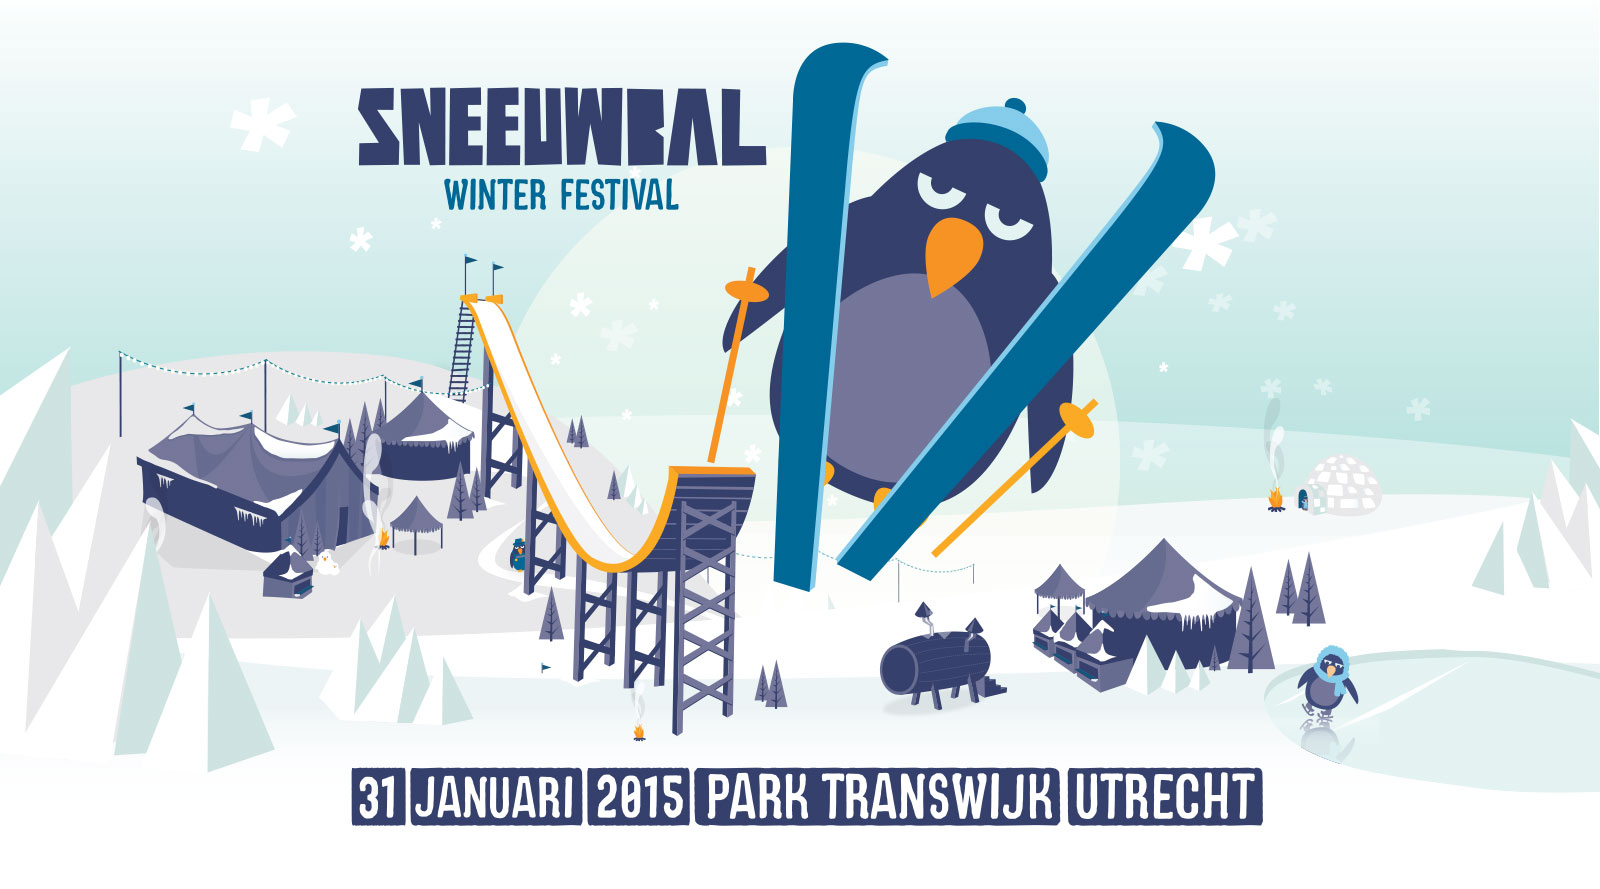 Sneeuwbal Winterfestival - Daily Cappuccino - Lifestyle Blog